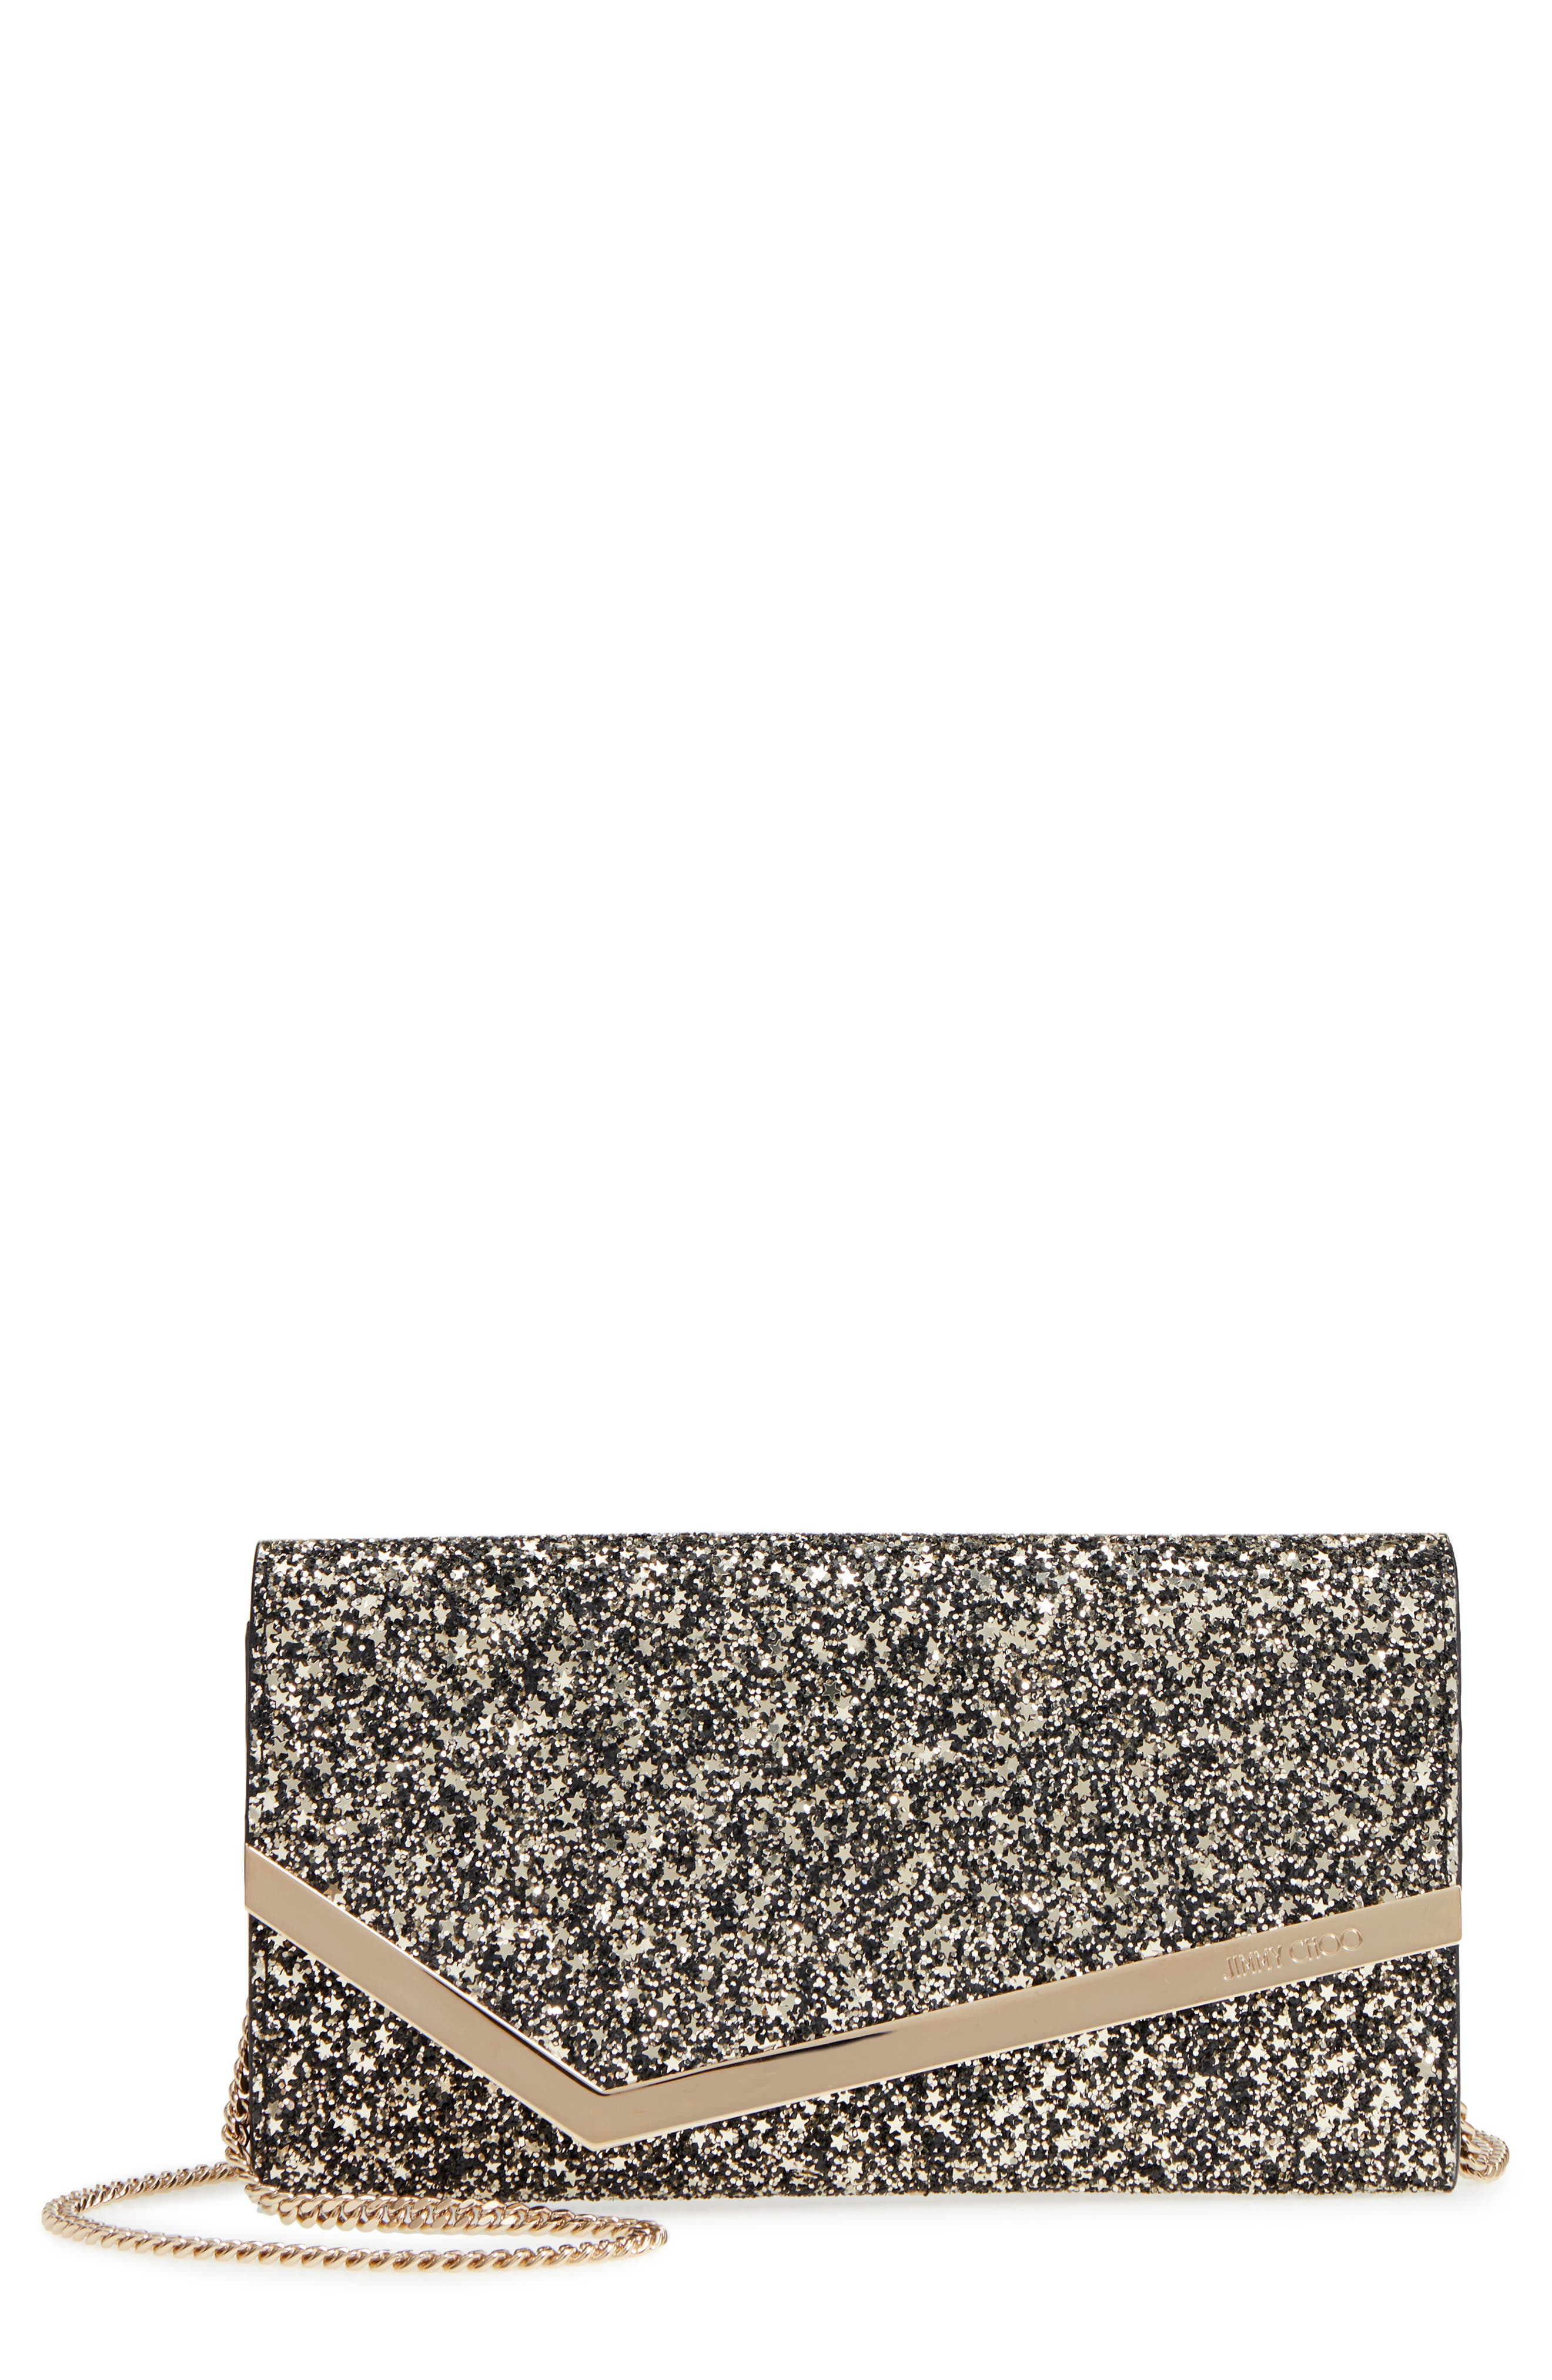 Emmie Star Glitter Clutch,                         Main,                         color, GOLD MIX